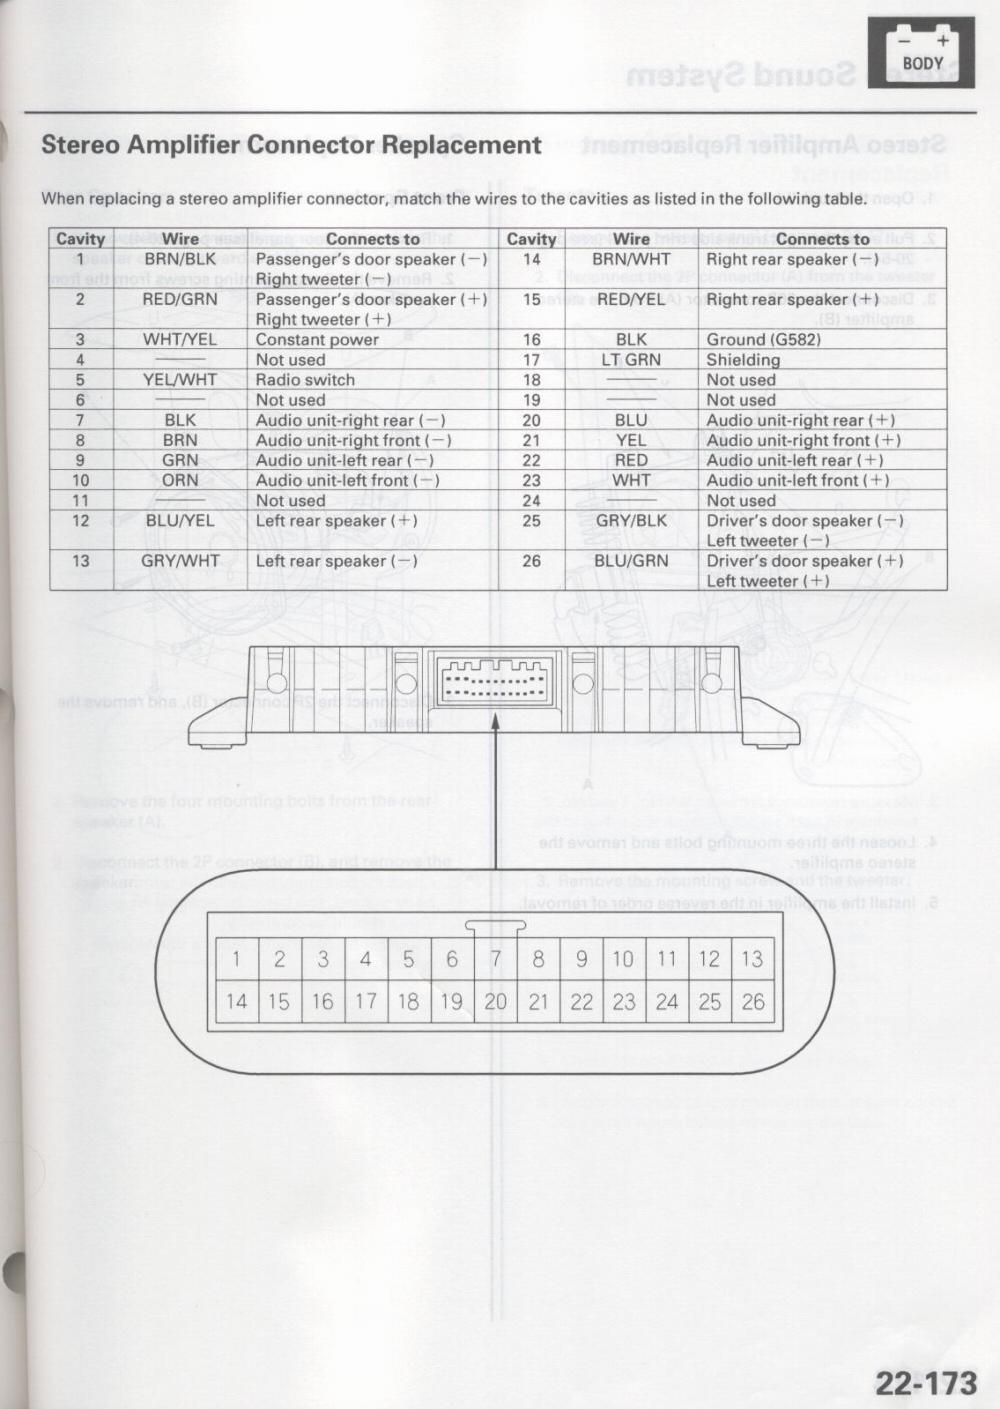 Acura 2002 TL car stereo amplifier wiring diagram harness car radio stereo audio wiring diagram autoradio connector wire  at gsmx.co